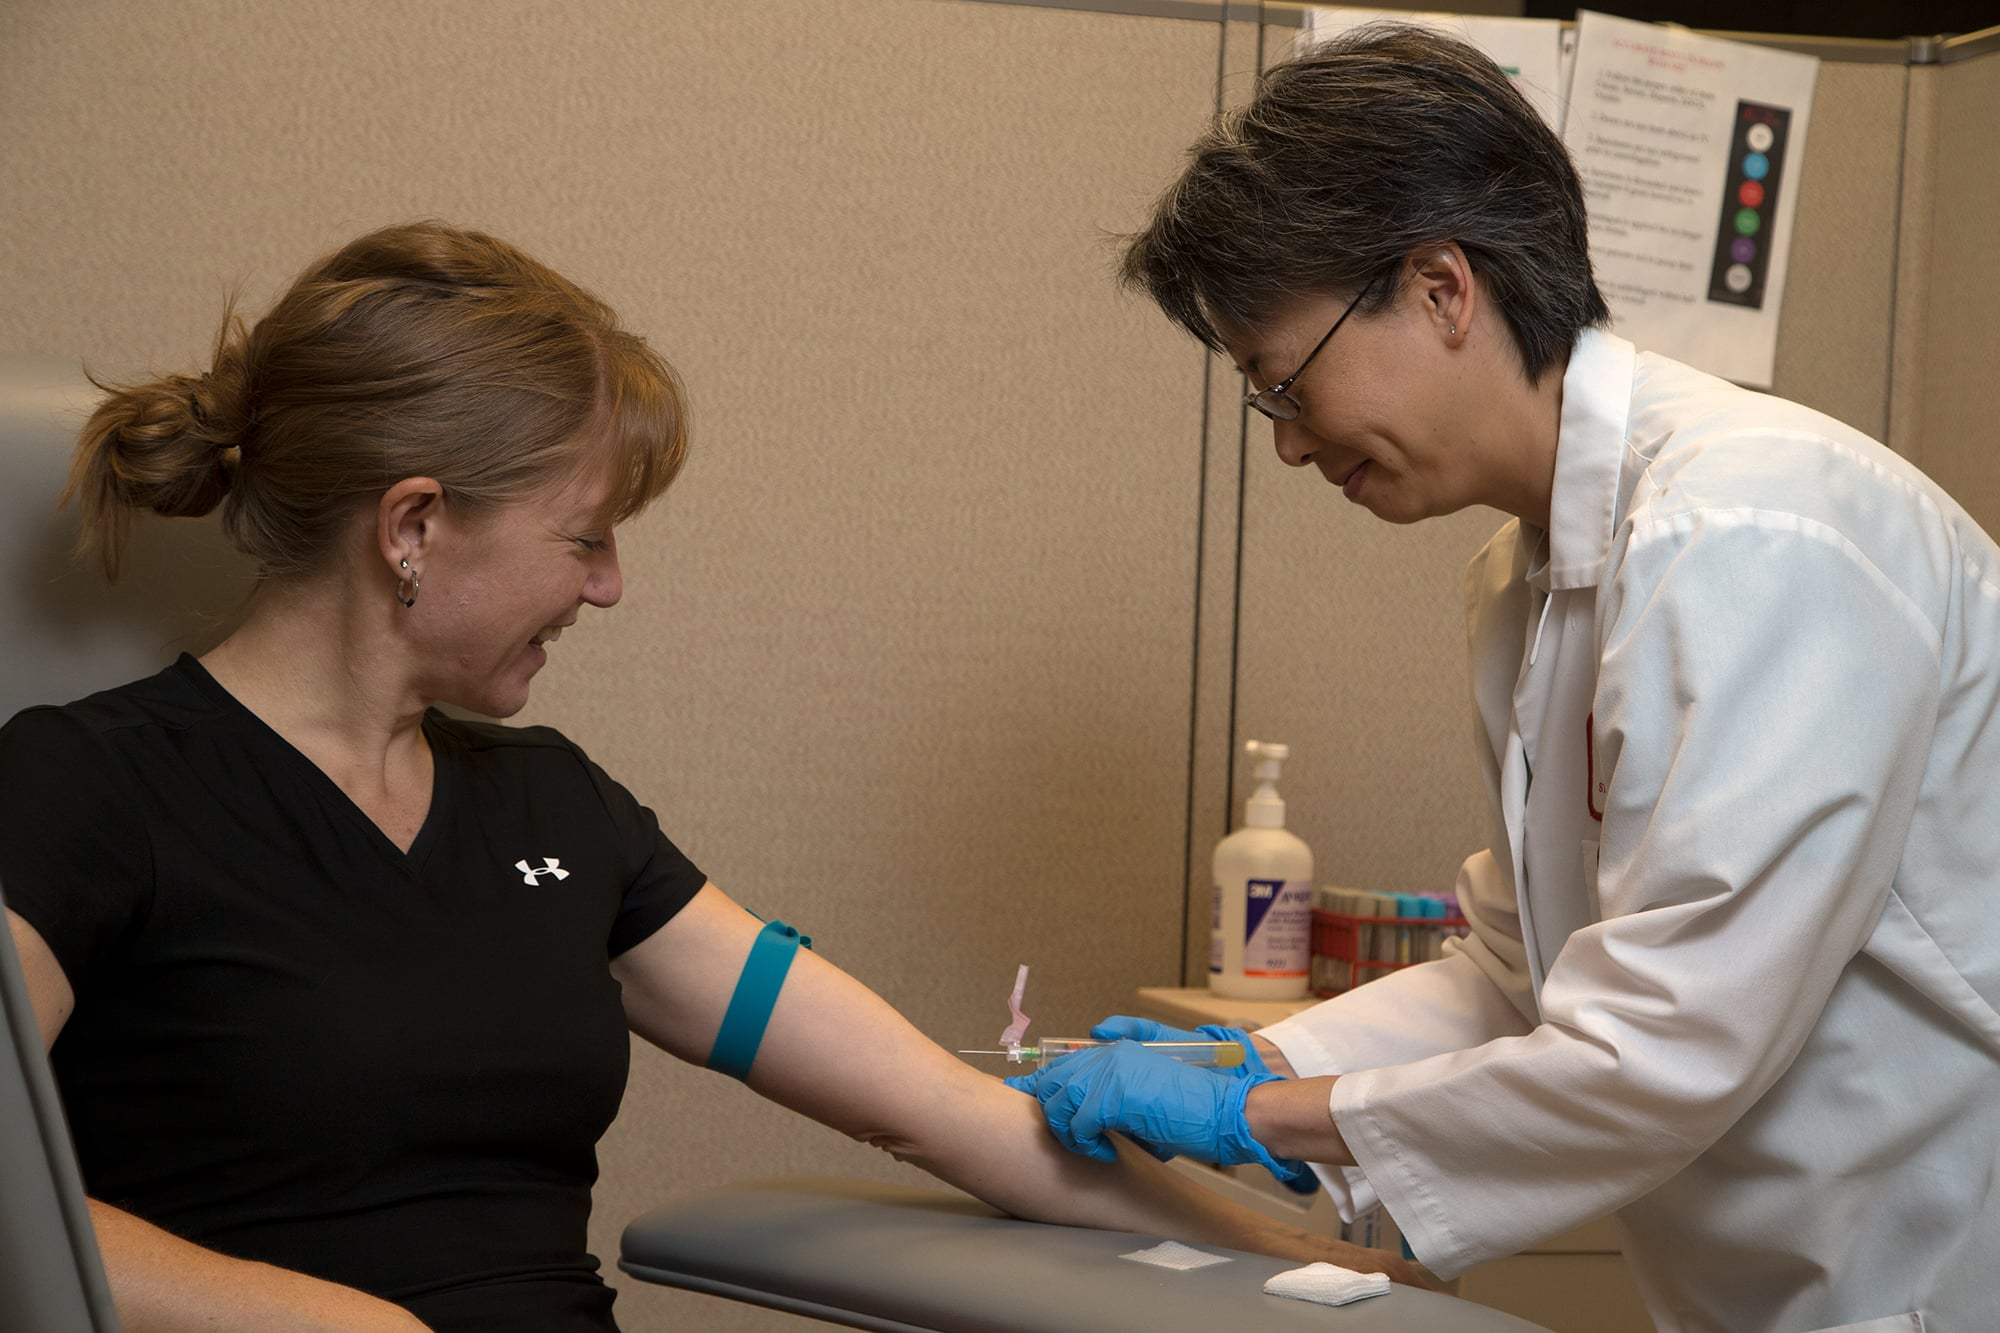 A patient at an appointment giving blood for labs.